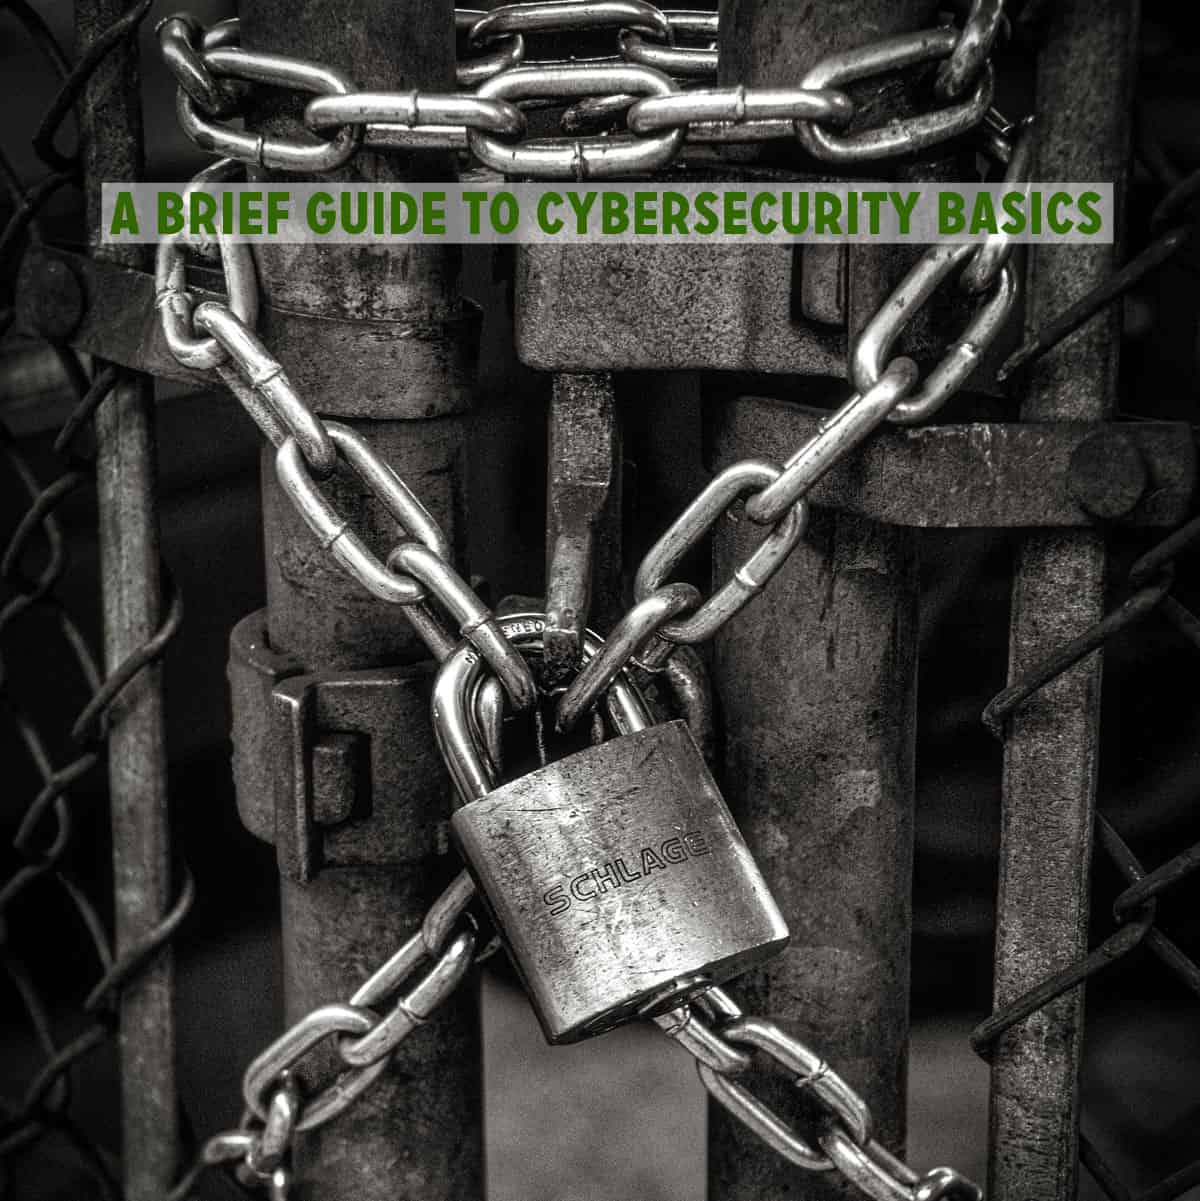 A brief guide to cybersecurity basics